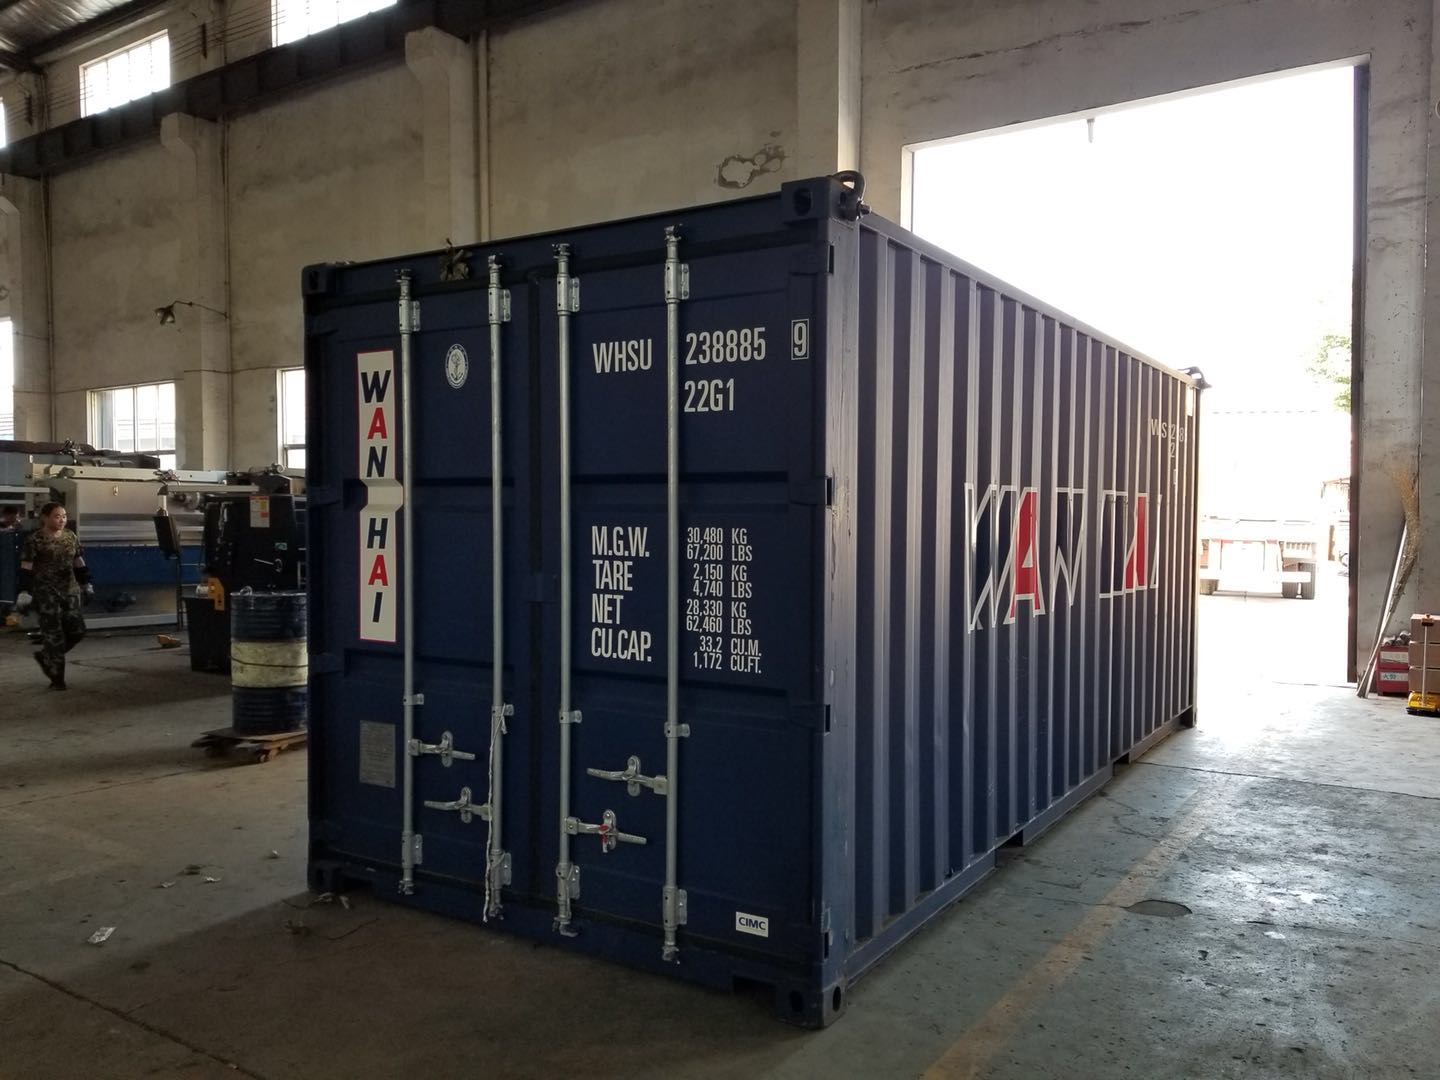 To Cambodia - WC67K 80T 2500 and QC12k 8x2500 delivery out